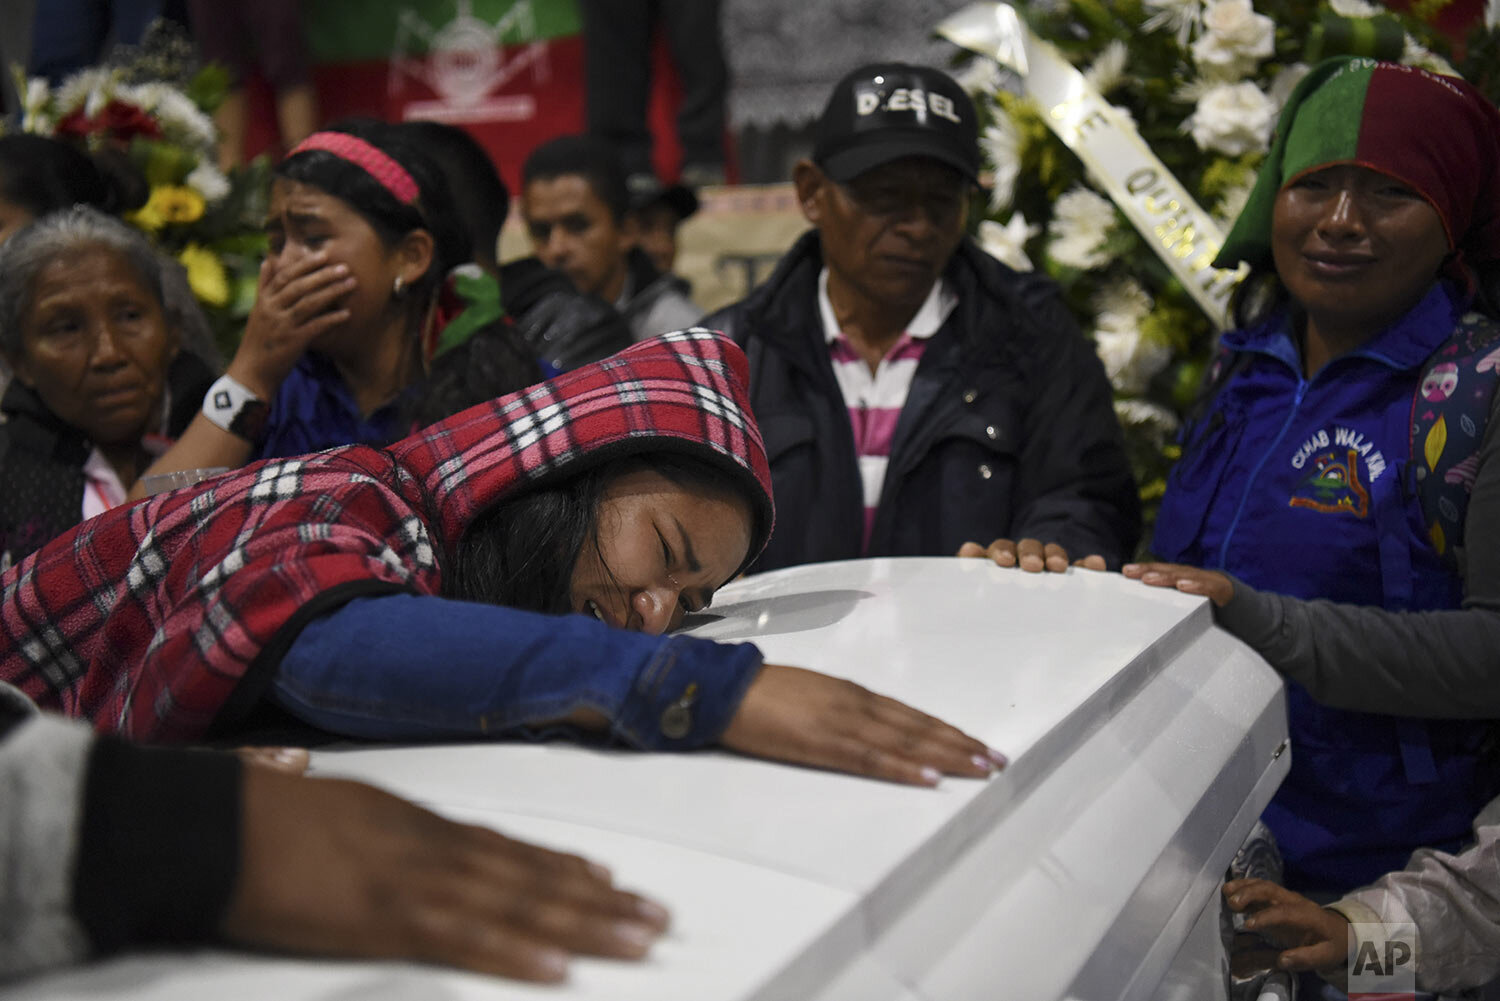 Relatives mourn on the coffin of a slain indigenous leader in Tacueyo, southwest Colombia, Thursday, Oct. 31, 2019. Five people from the Tacueyo reservation were killed late Tuesday when their caravan of armored SUVs was ambushed by gunmen the government says belong to a faction of Revolutionary Armed Forces of Colombia that refused to accept the rebel's group treaty with the government. (AP Photo/Christian EscobarMora)